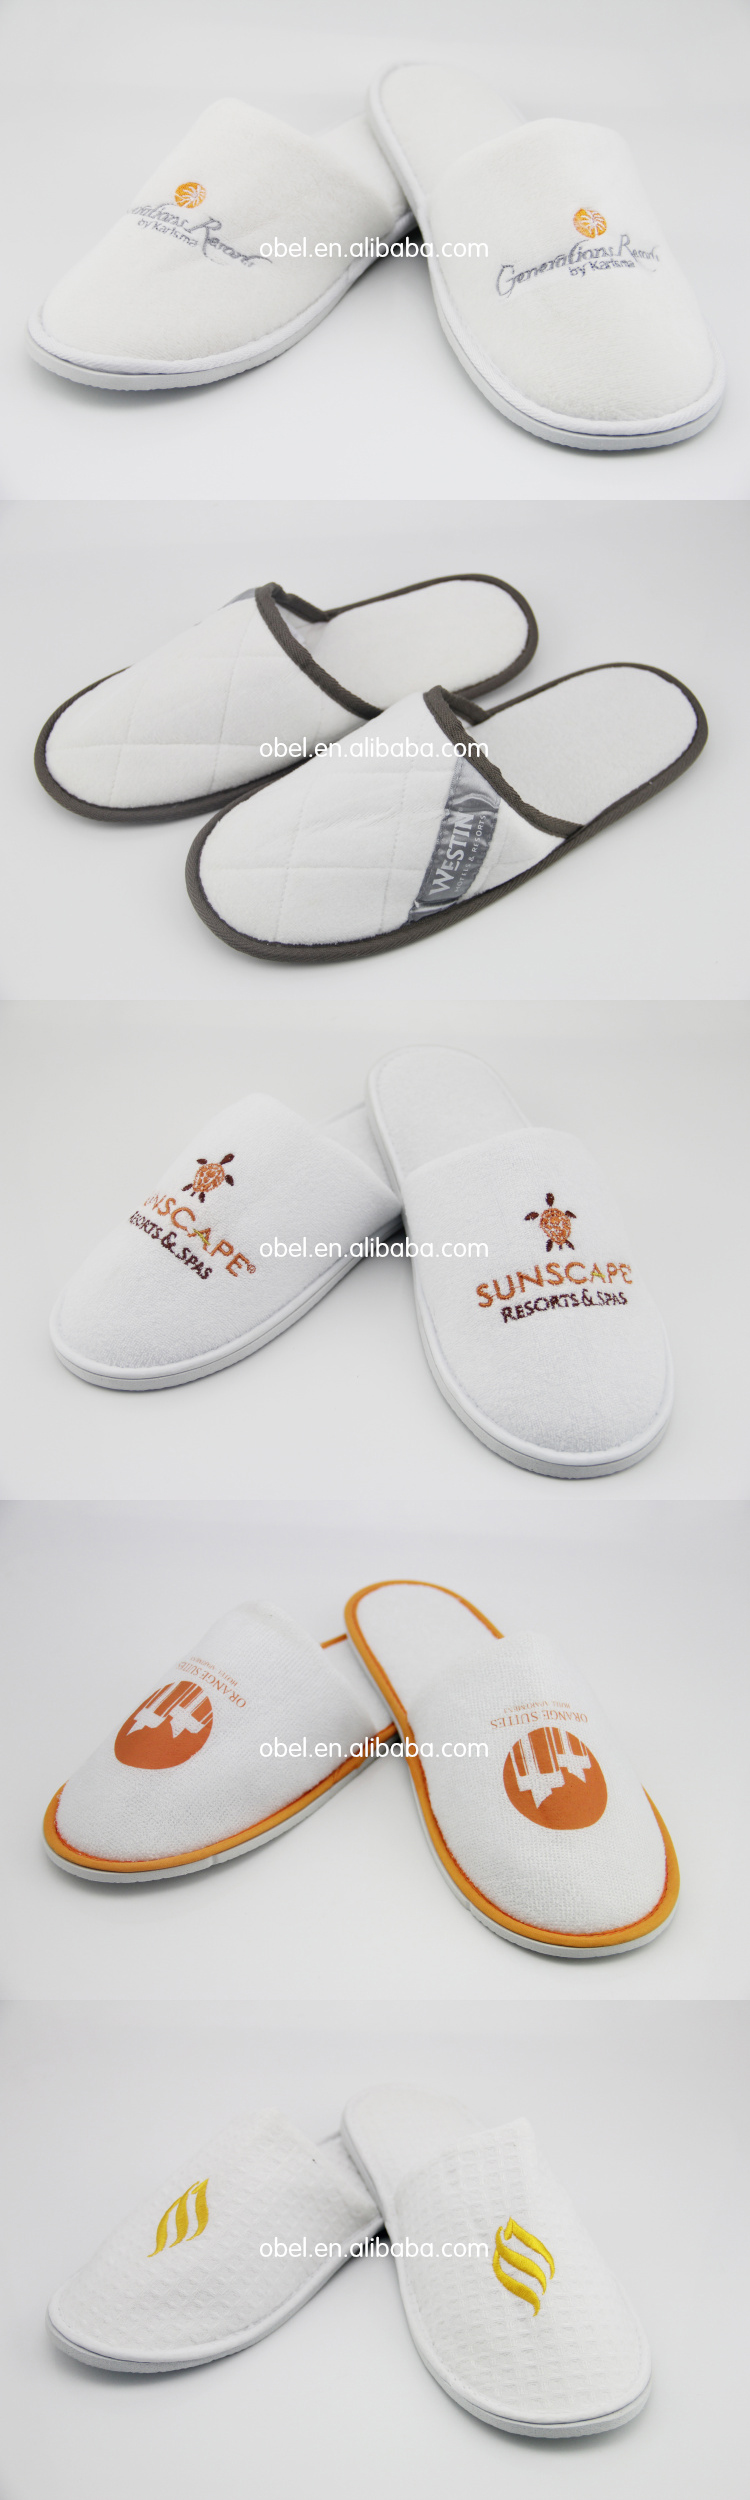 Customized Slippers